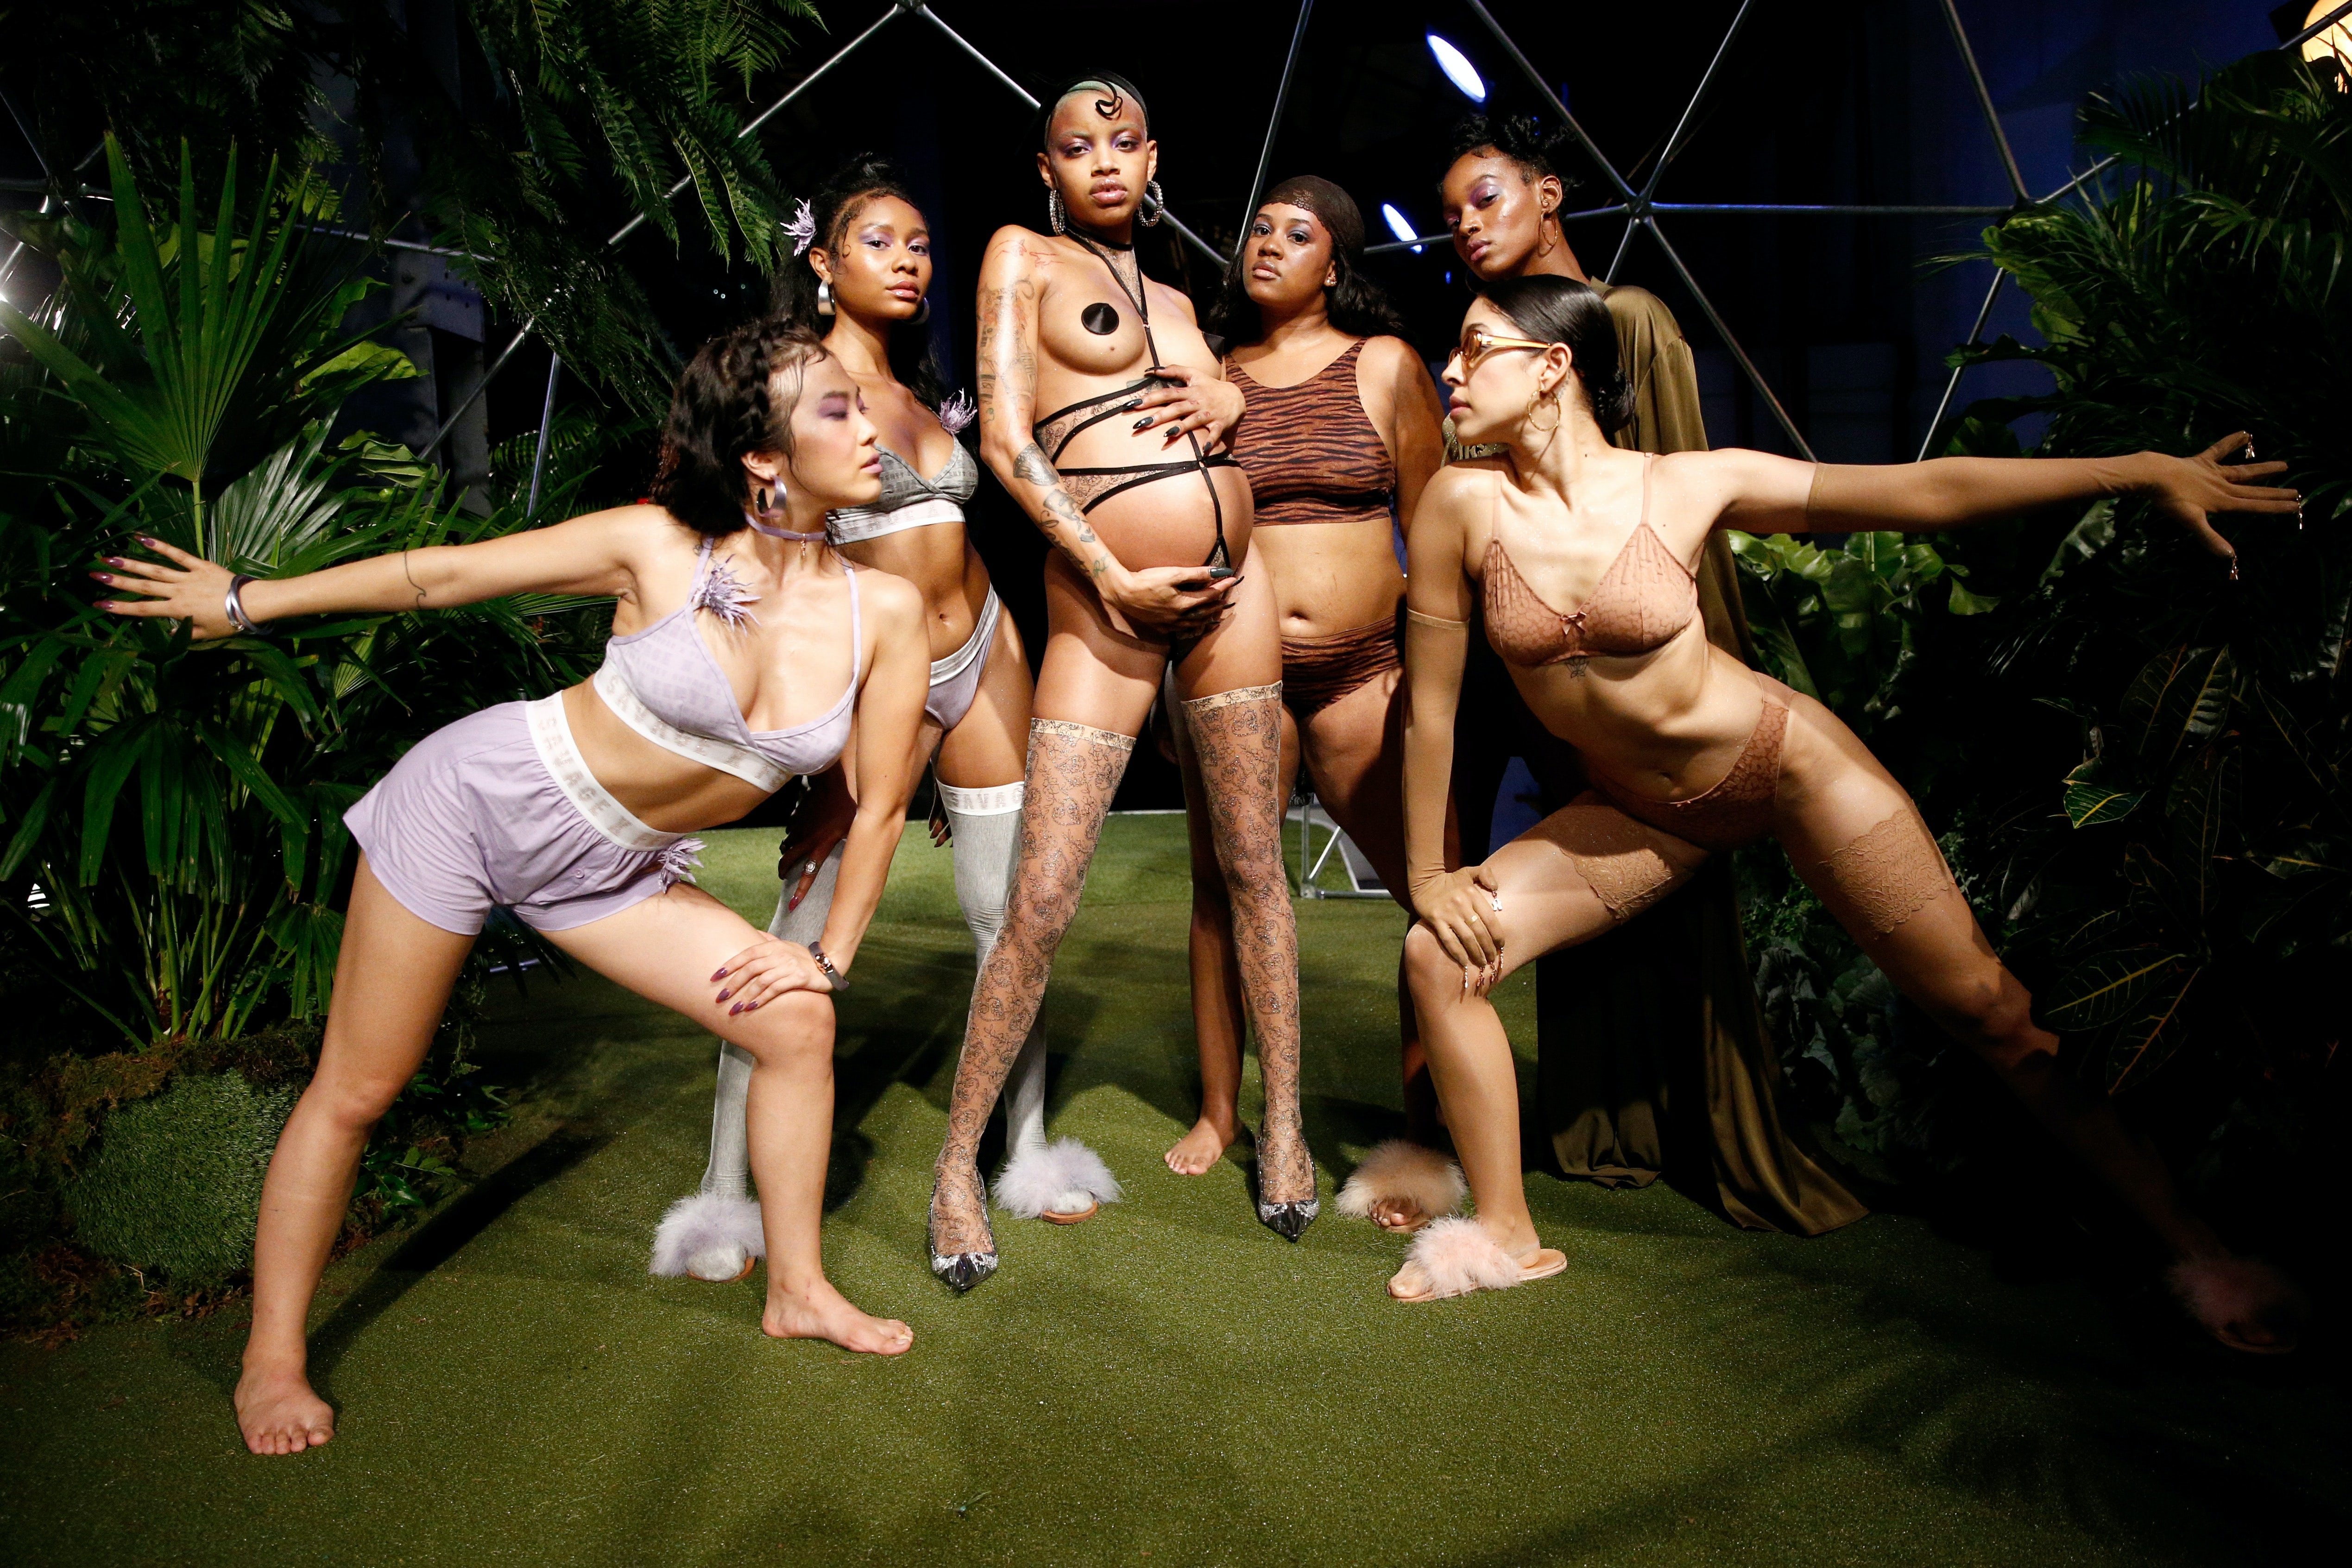 The Savage X Fenty runway show in September was lauded for its model diversity   Source: Brian Ach/Getty Images